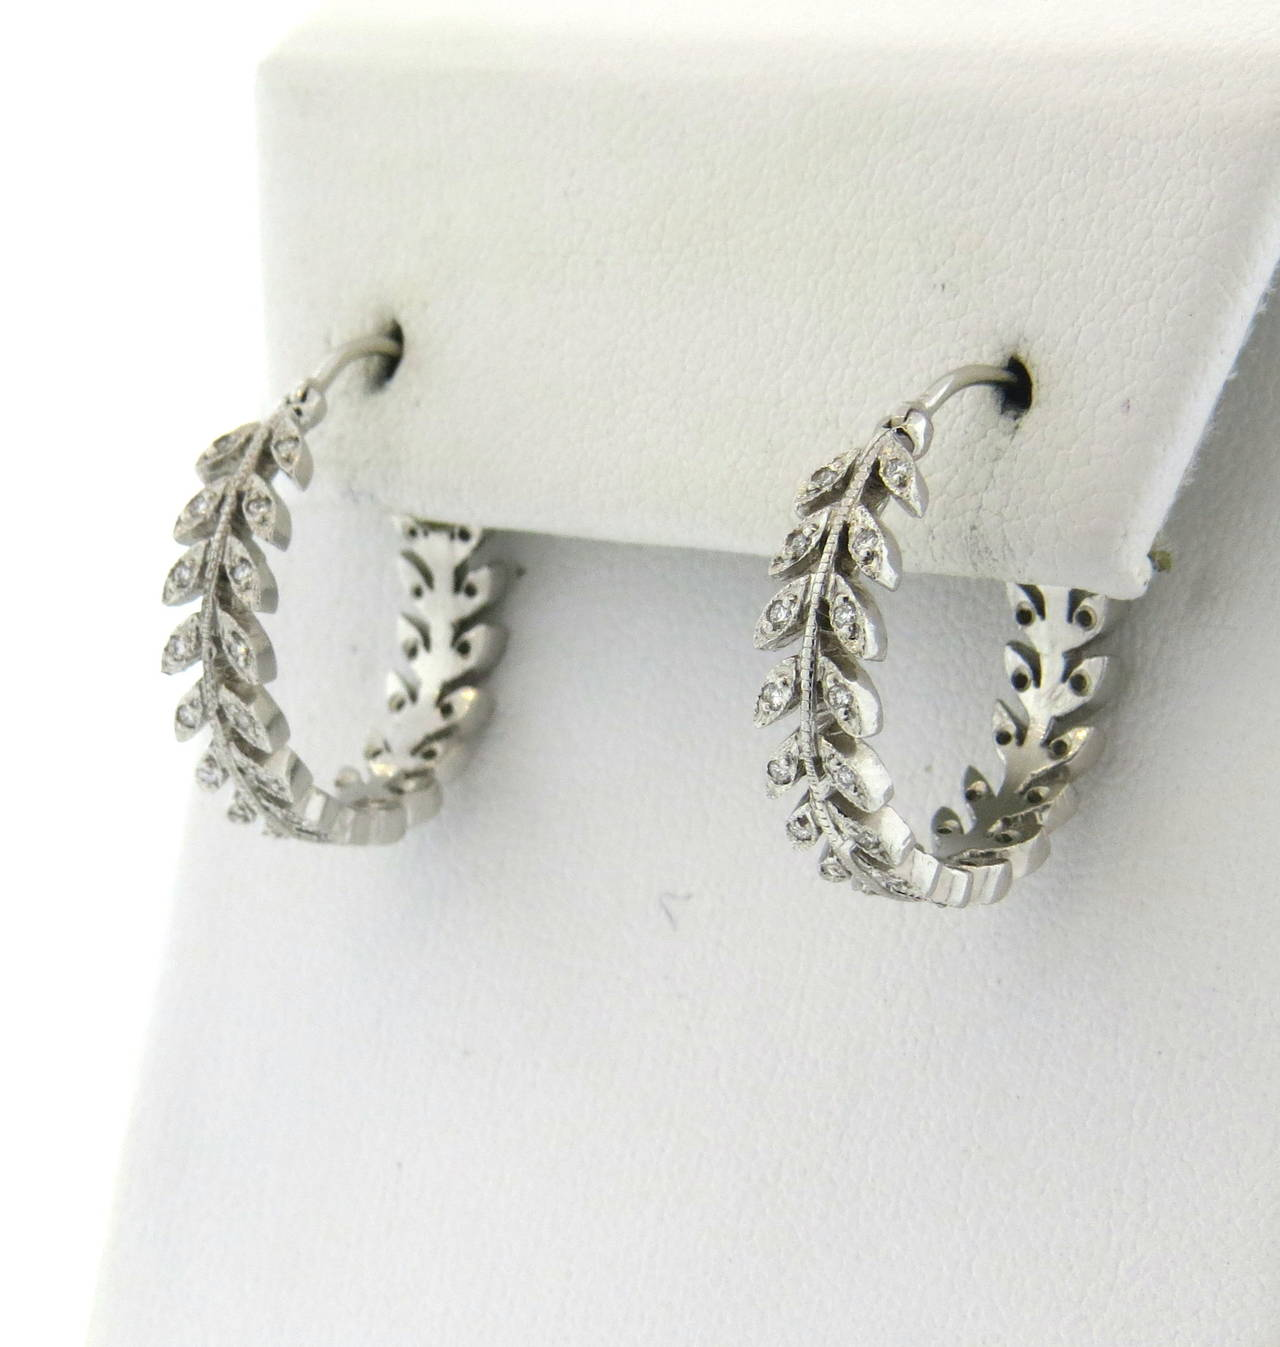 333a18dae2bcc Platinum Hoop Earrings Robert Procop Platinum Square And Baguette ...